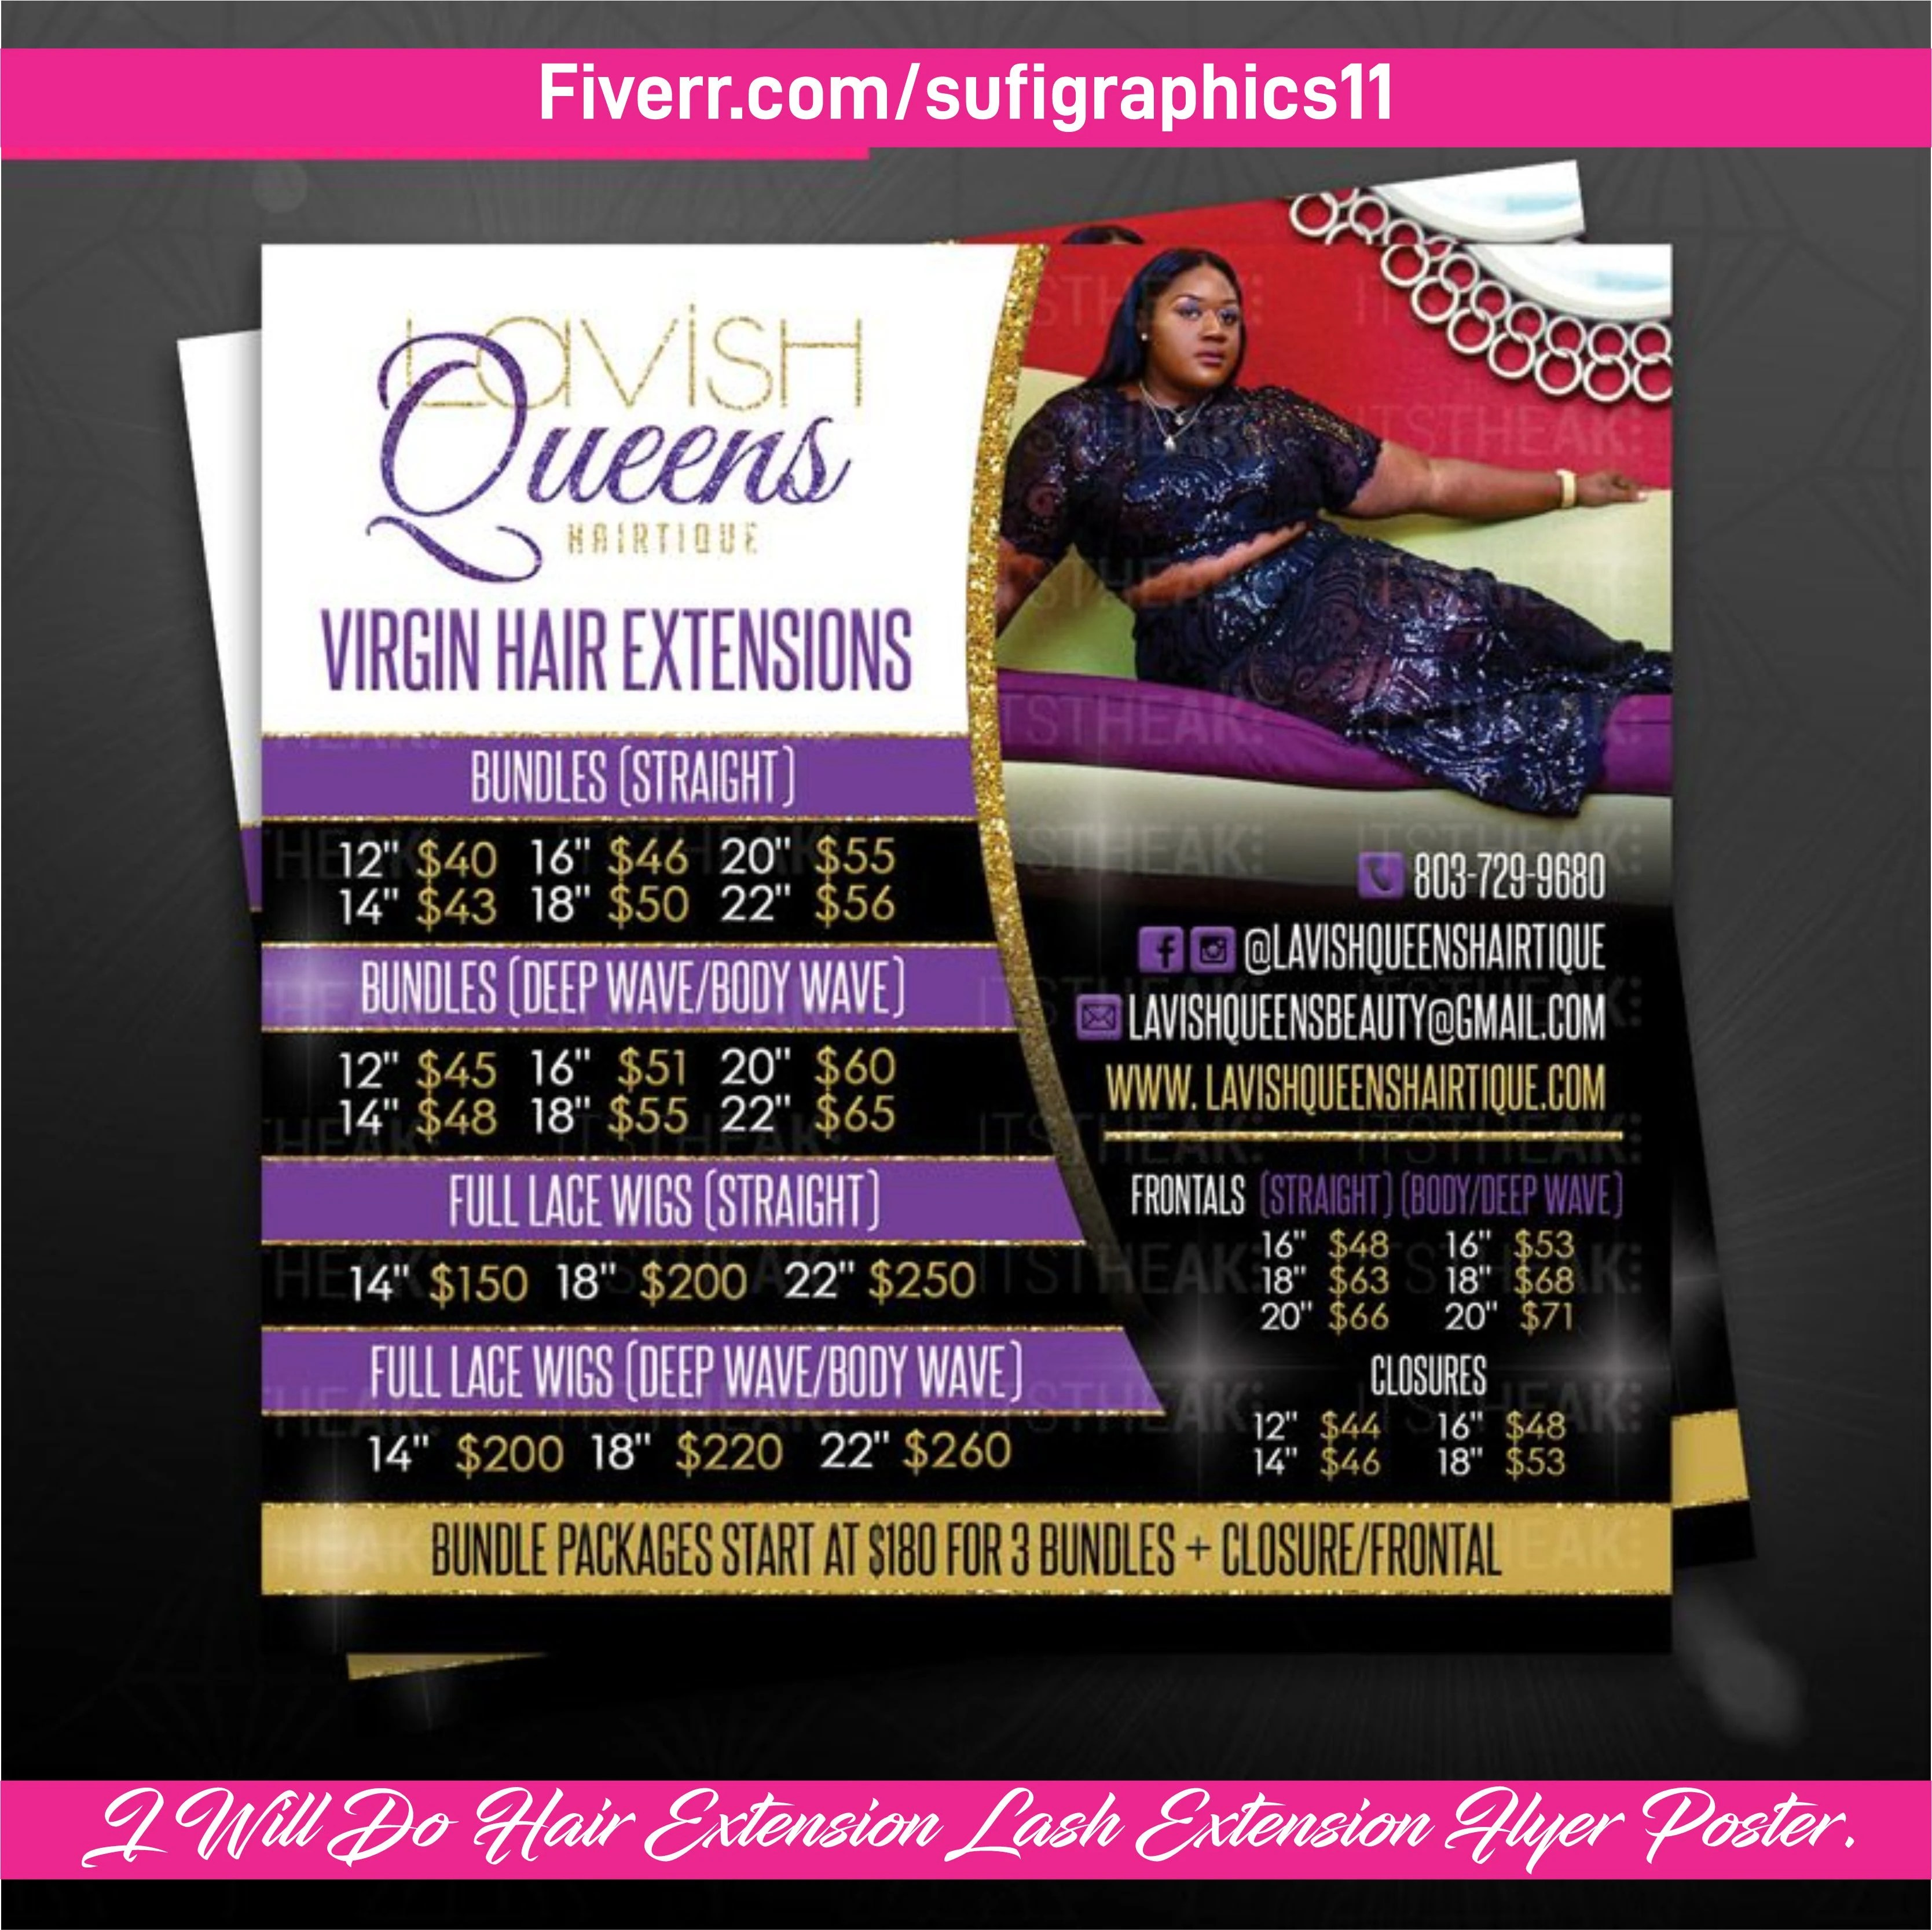 do beautiful hair extension lash extension flyer poster ad